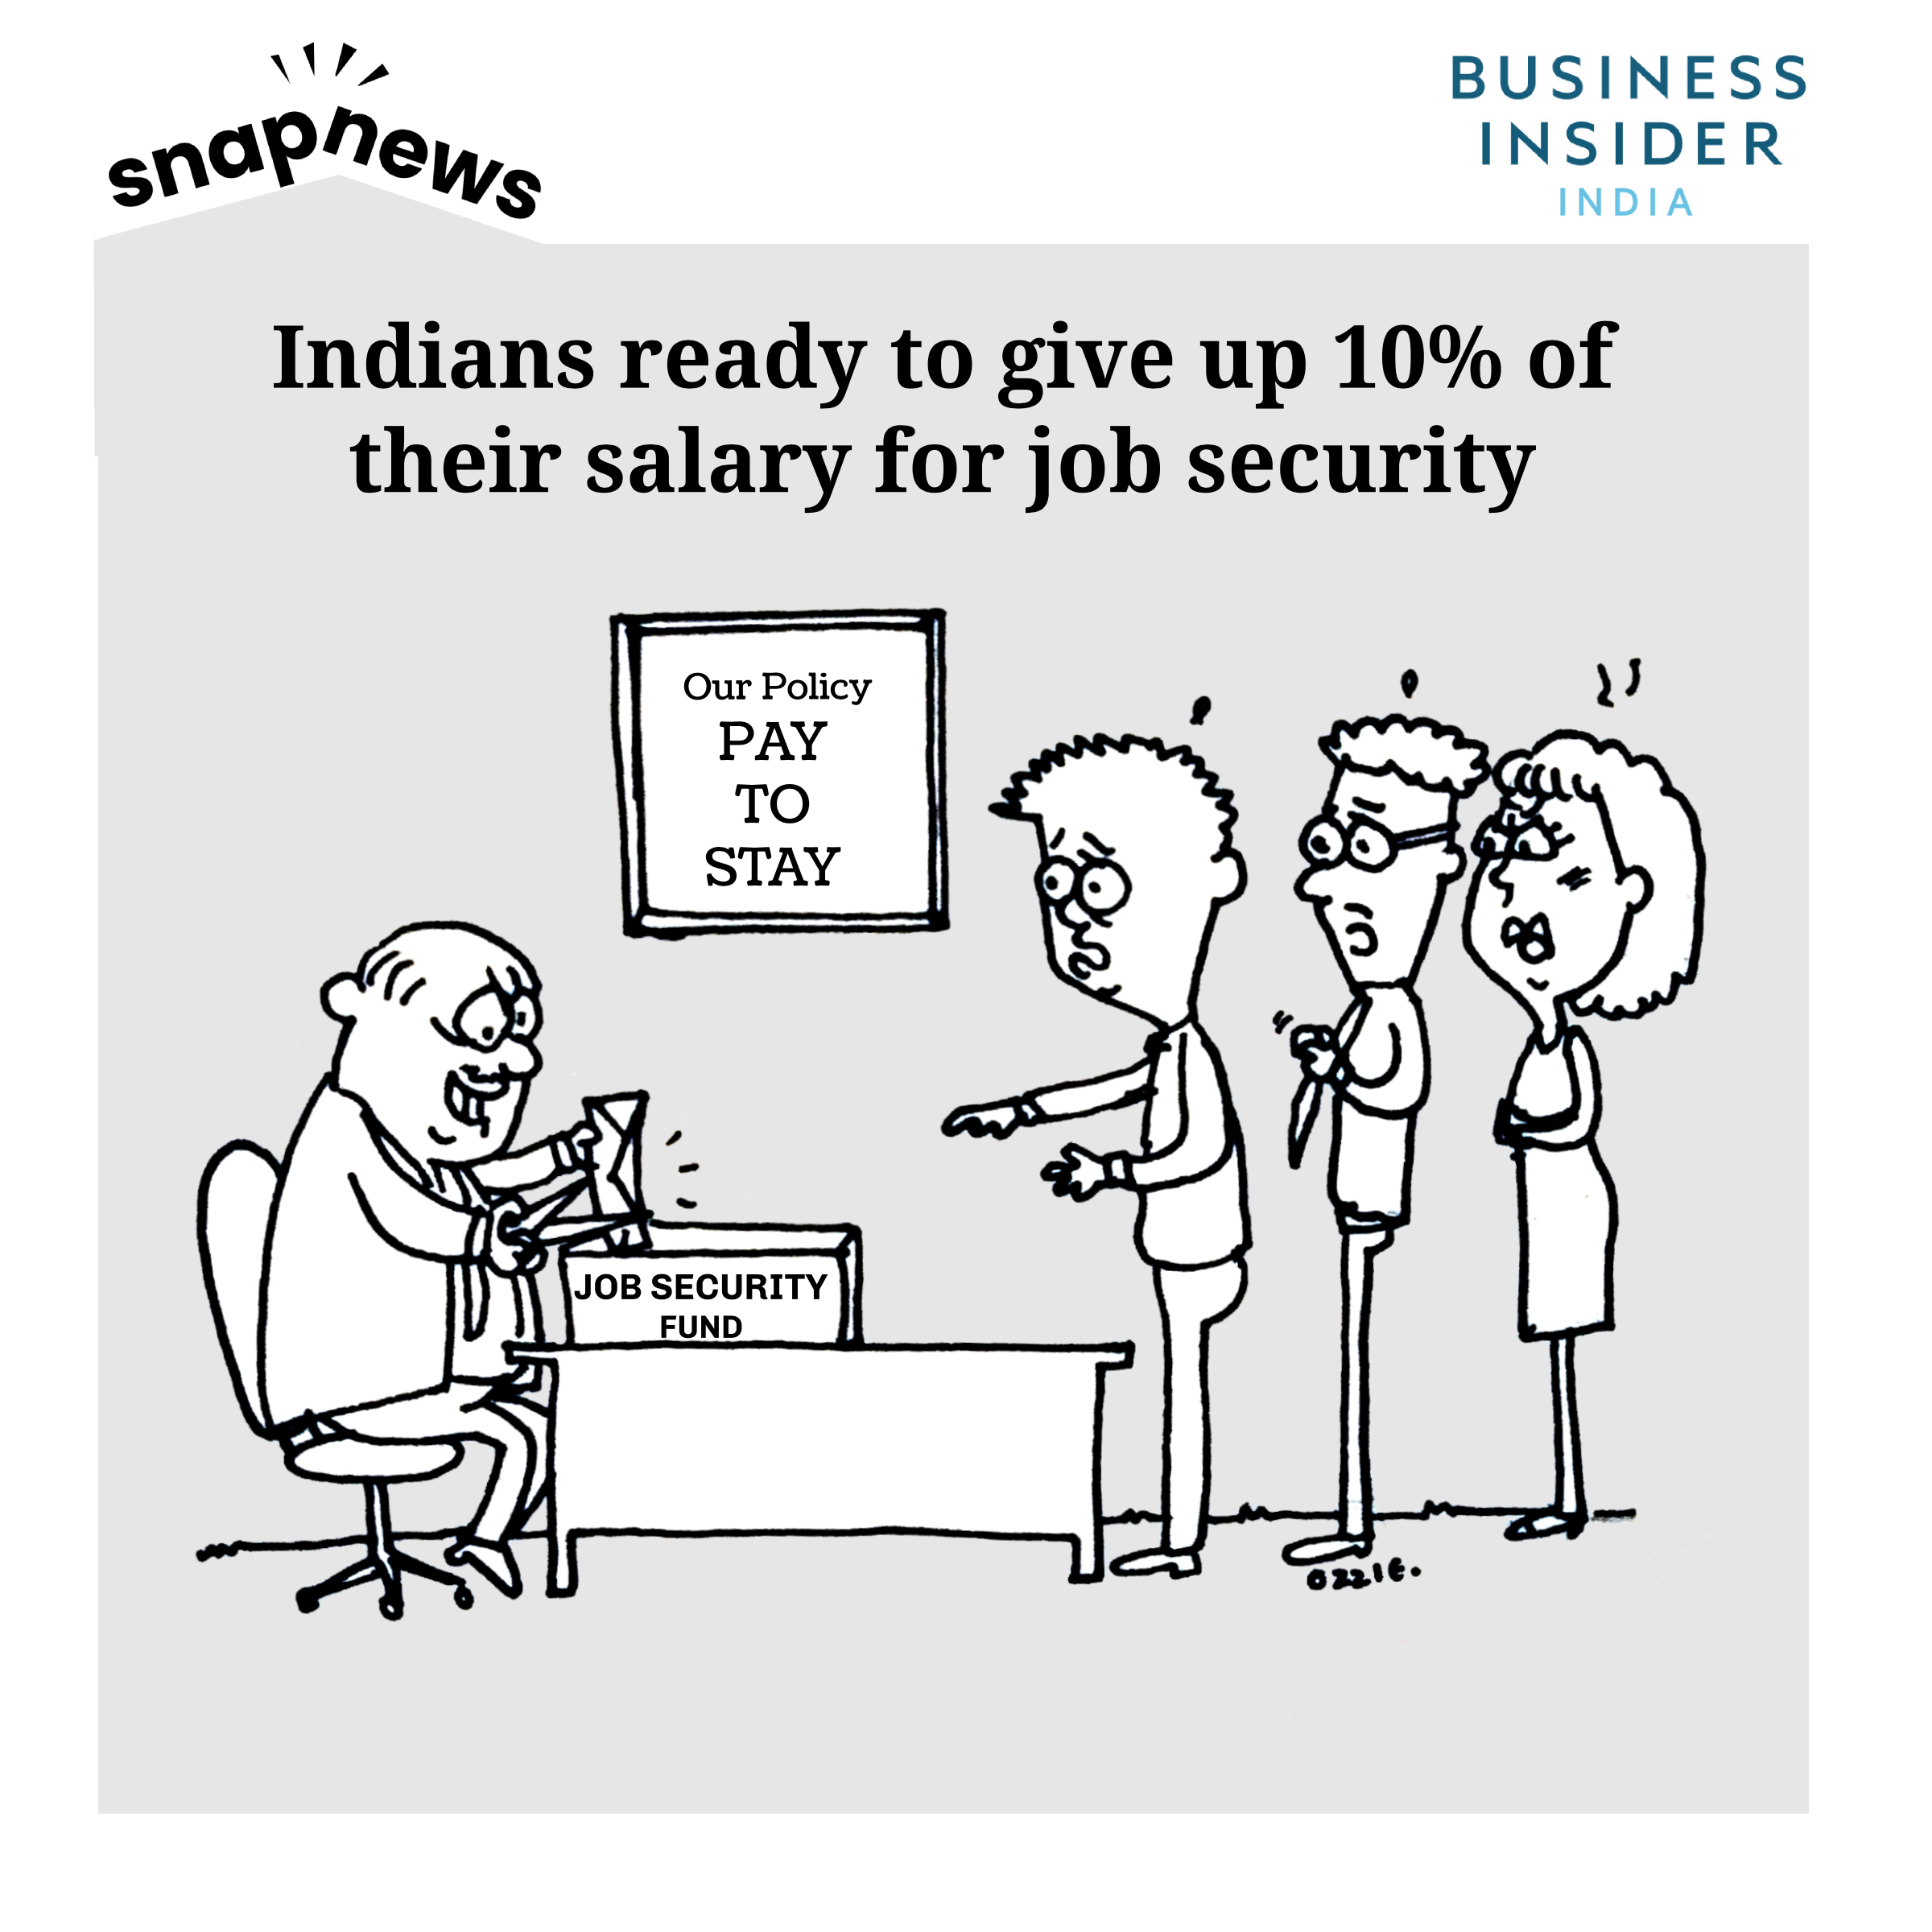 Indians are willing to give up 10% of salary for job